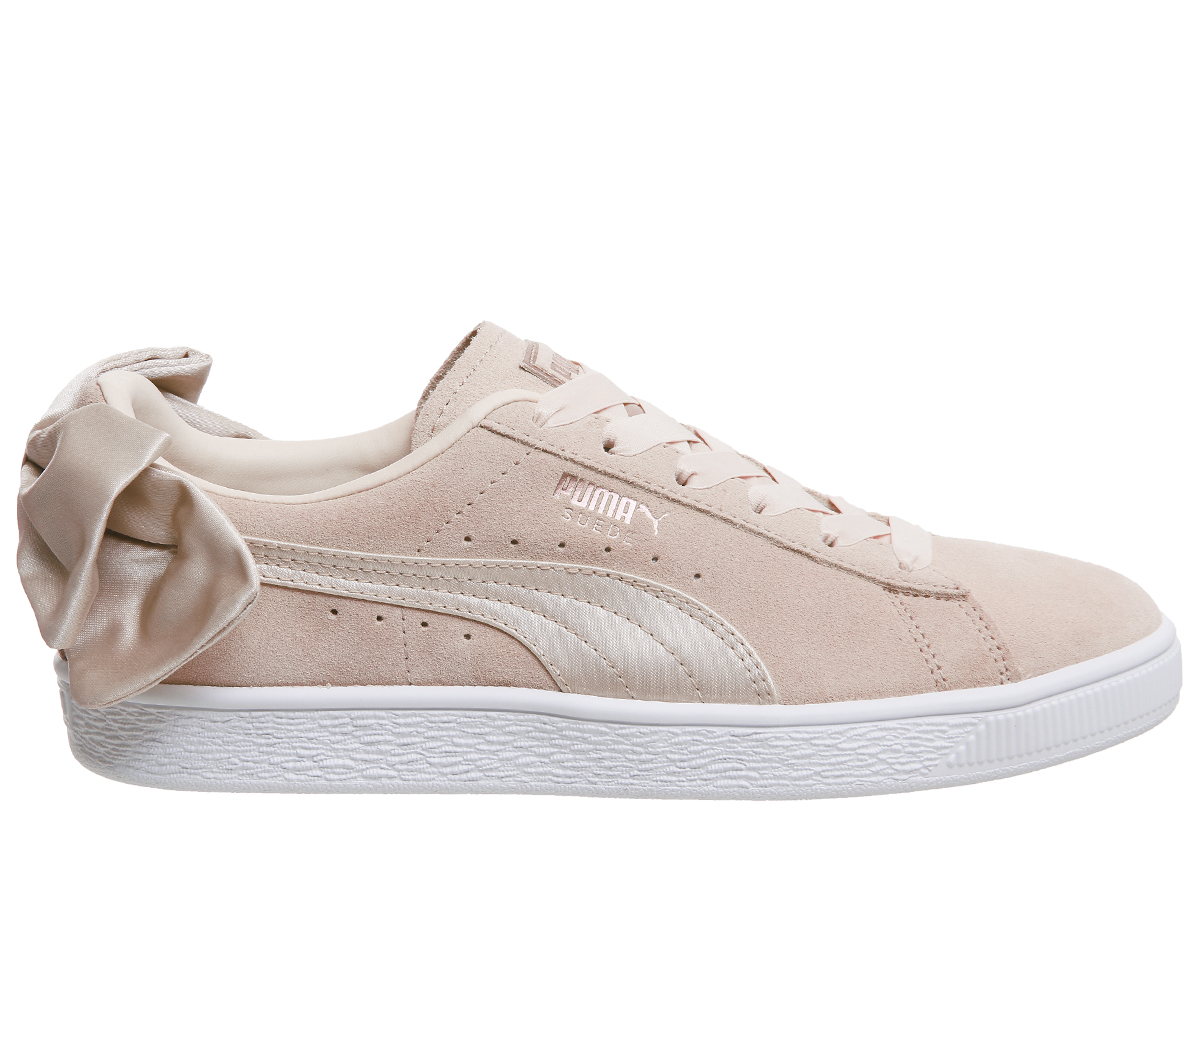 info for b6ee4 42a76 Details about Womens Puma Suede Bow Trainers CREAM TAN VALENTINE Trainers  Shoes